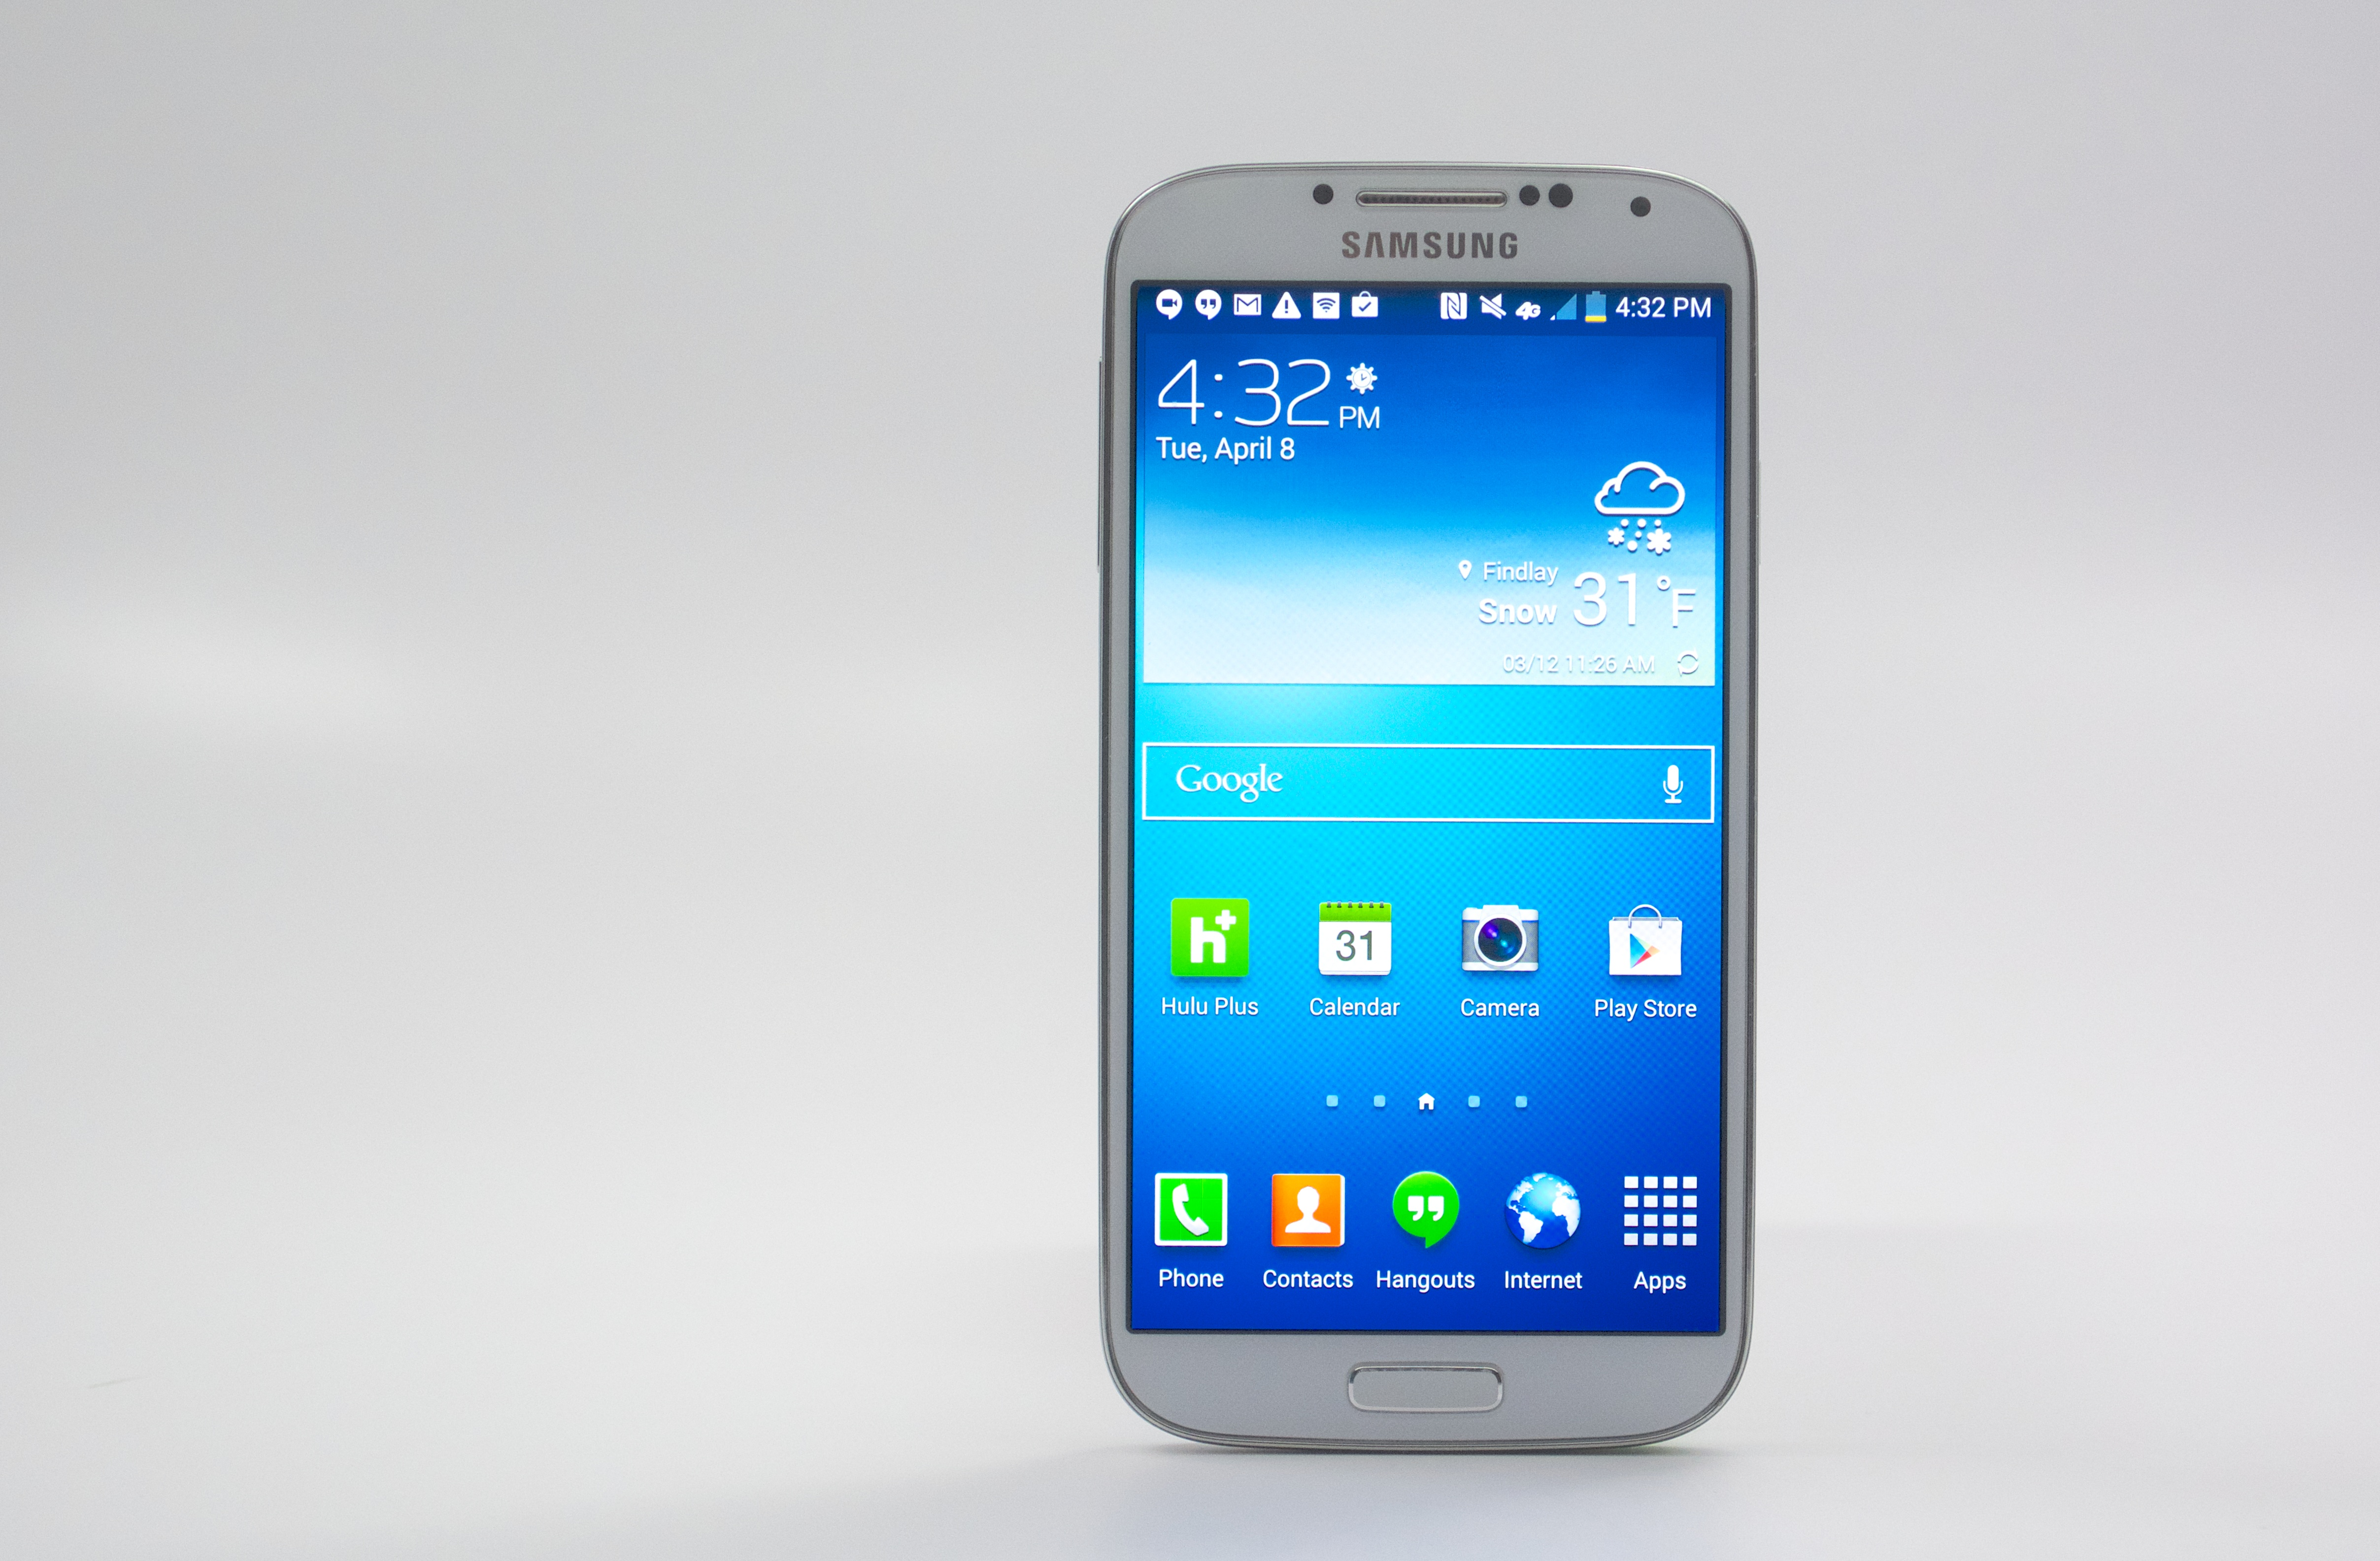 How Much Can I Get For A Galaxy Phone likewise Samsung Galaxy S7 Vs Samsung Galaxy S6 id4171 as well 181629904282 also Samsung galaxy s8 8161 moreover Verizon Takes Over The Home Button On Its Version Of The Samsung Galaxy S4 Mini id48216. on sprint galaxy s4